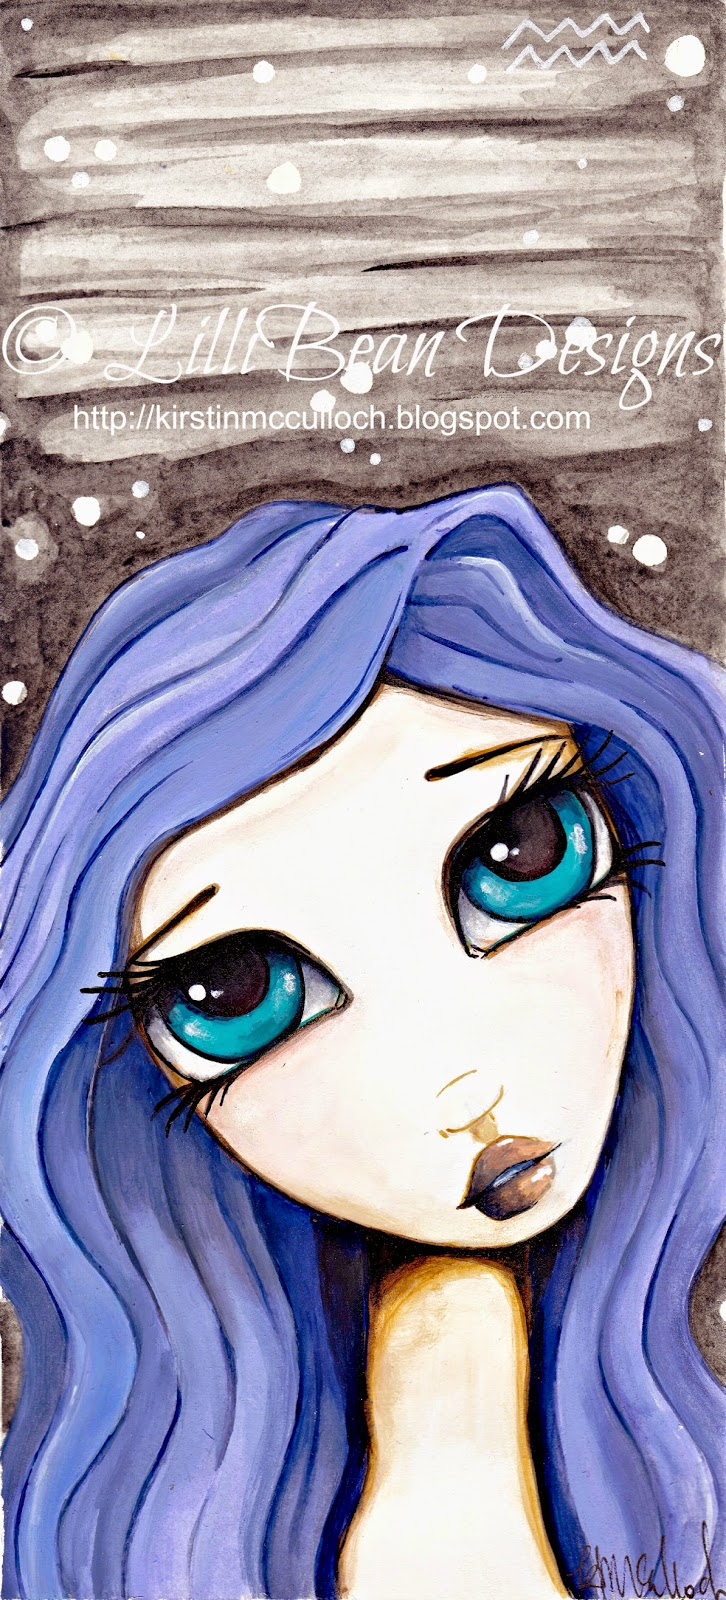 AQUARIUS an original painting by LilliBean Designs © Kirstin McCulloch 2015